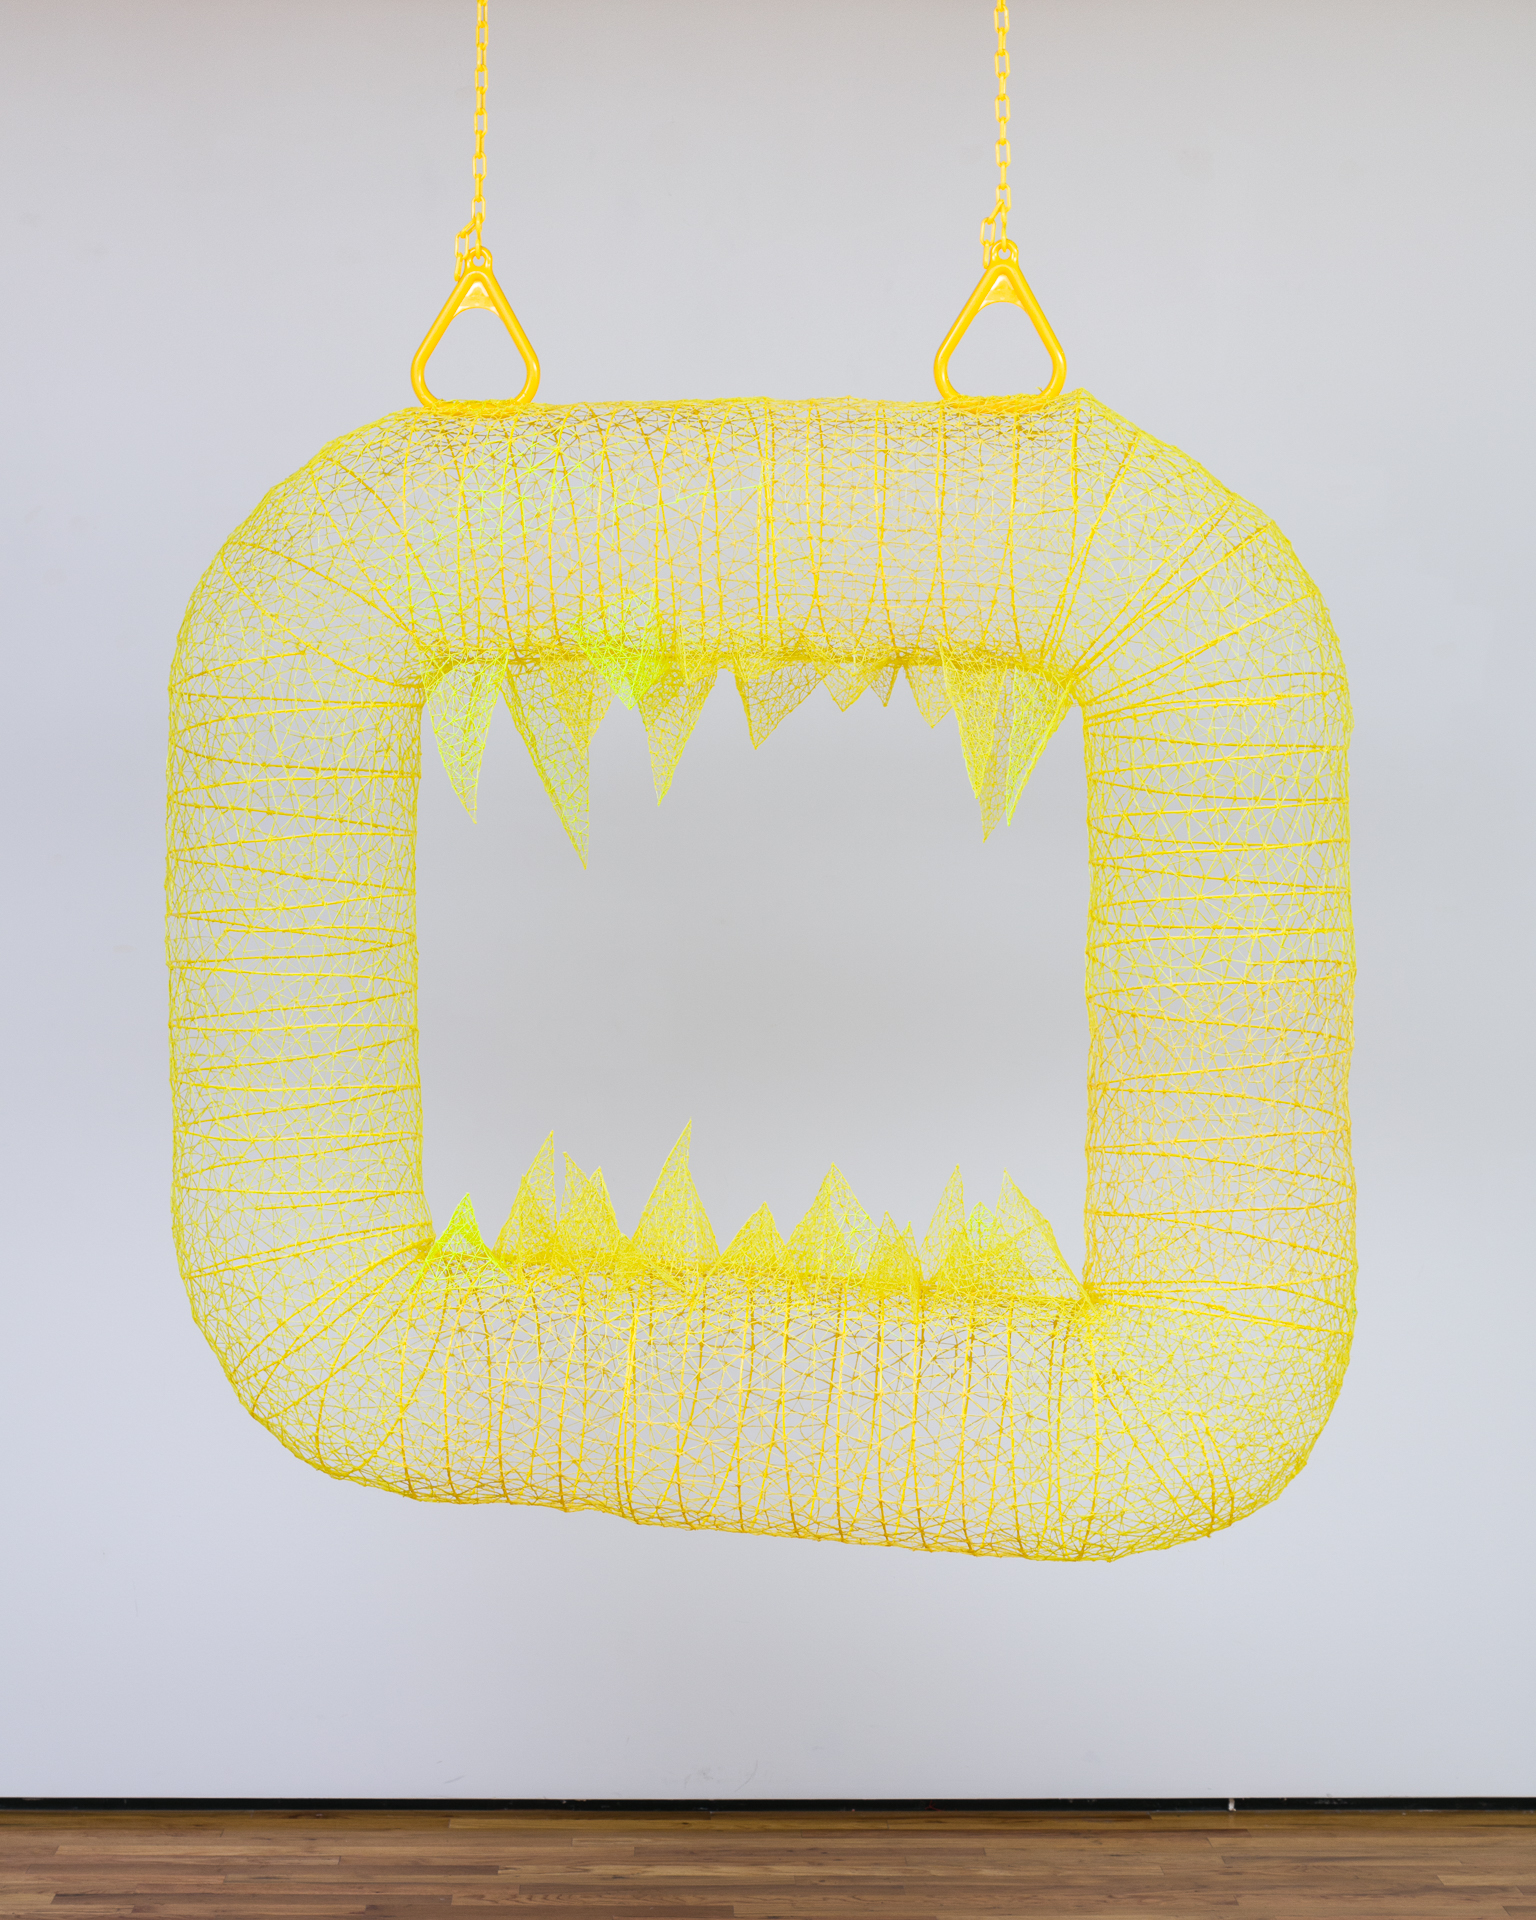 """'Safety Yellow Hellmouth' 2018, 48"""" x 48"""" x 13"""" ABS Plastic Filament, made by '3d' pen, Playground Hardware.  'Safety Yellow Hellmouth' plays on childhood monsters, temptation to touch, and makes an irresistible frame for a 'selfie'. As part of my solo exhibition 'Super Synthetic' at Mariani Gallery, UNC Greeley 2018."""